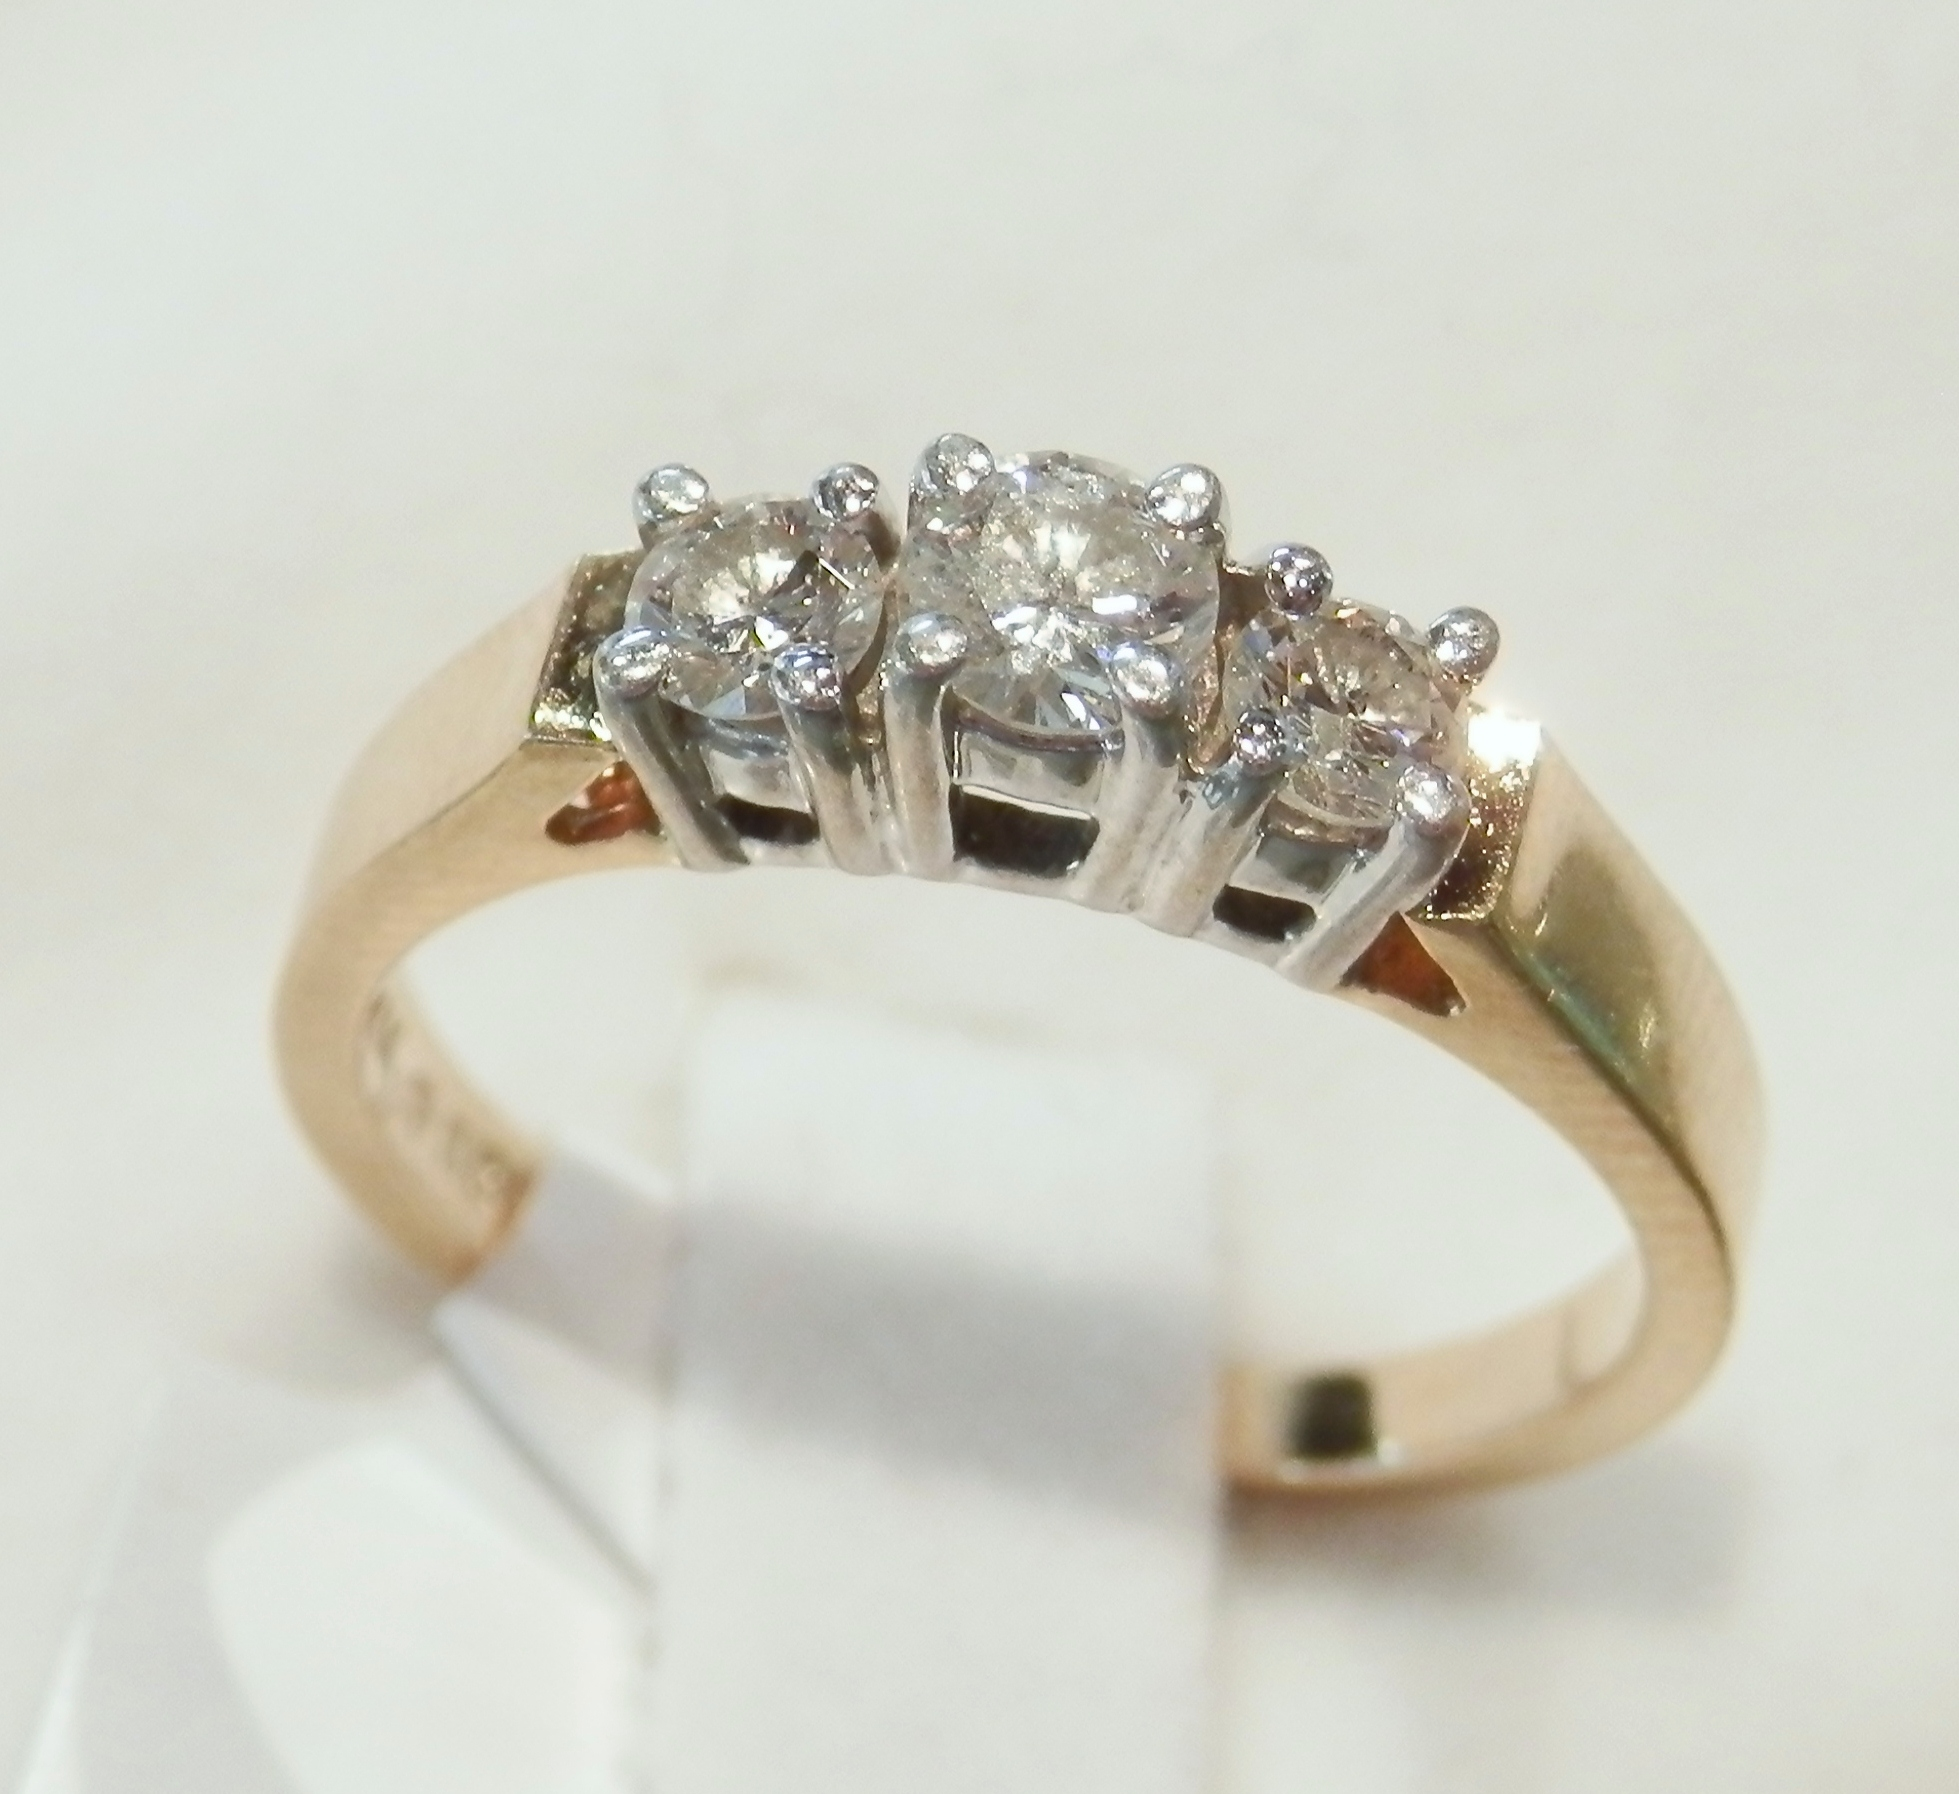 rings wedding mainye future ring stone engagement gold present past diamond